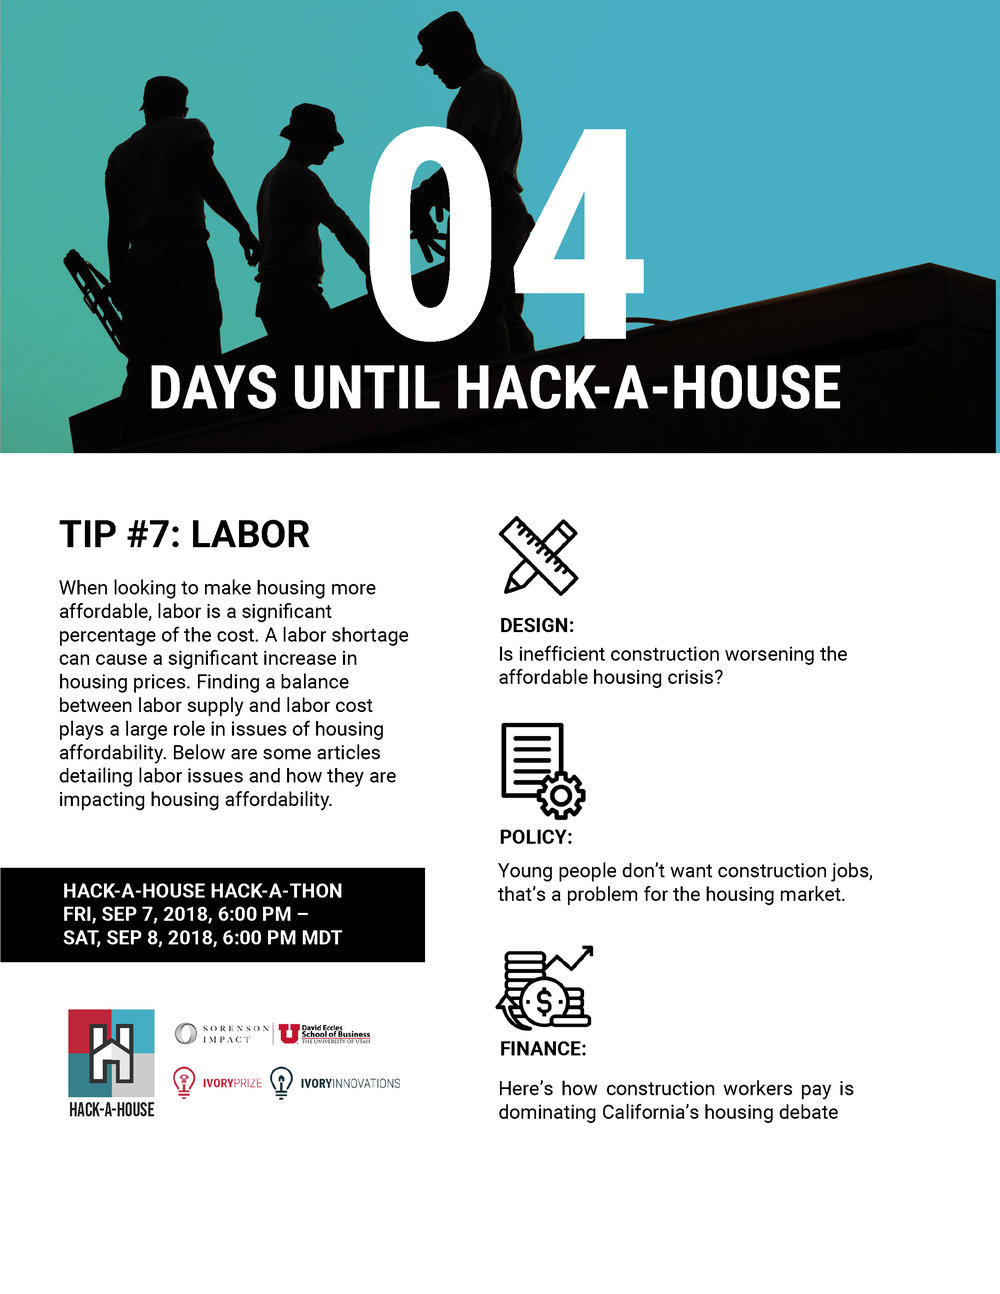 hack-a-house countdown_07.jpg